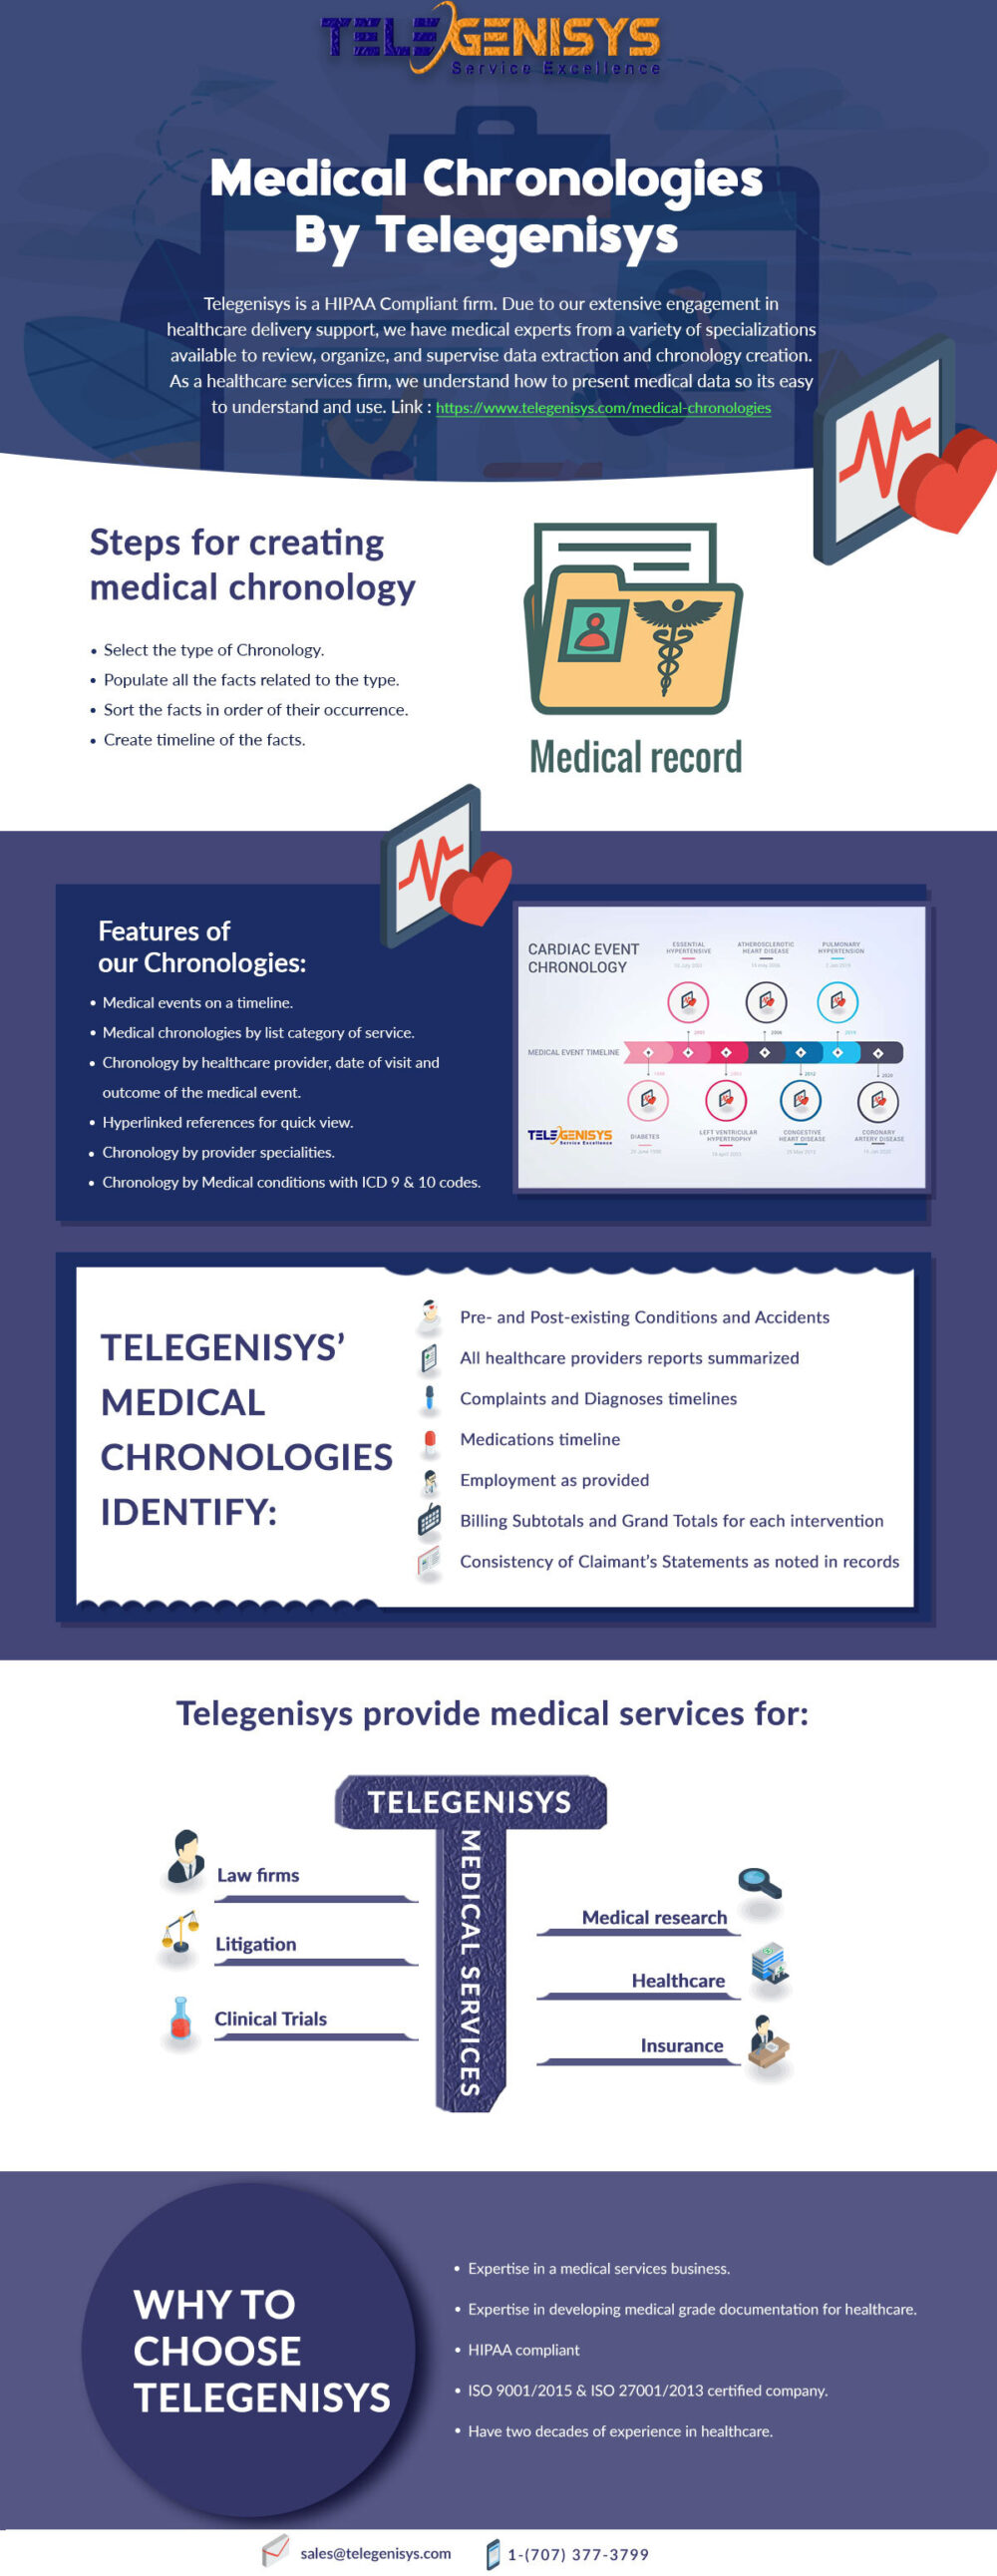 Medical Chronology Infographic Presentation By Telegenisys Inc